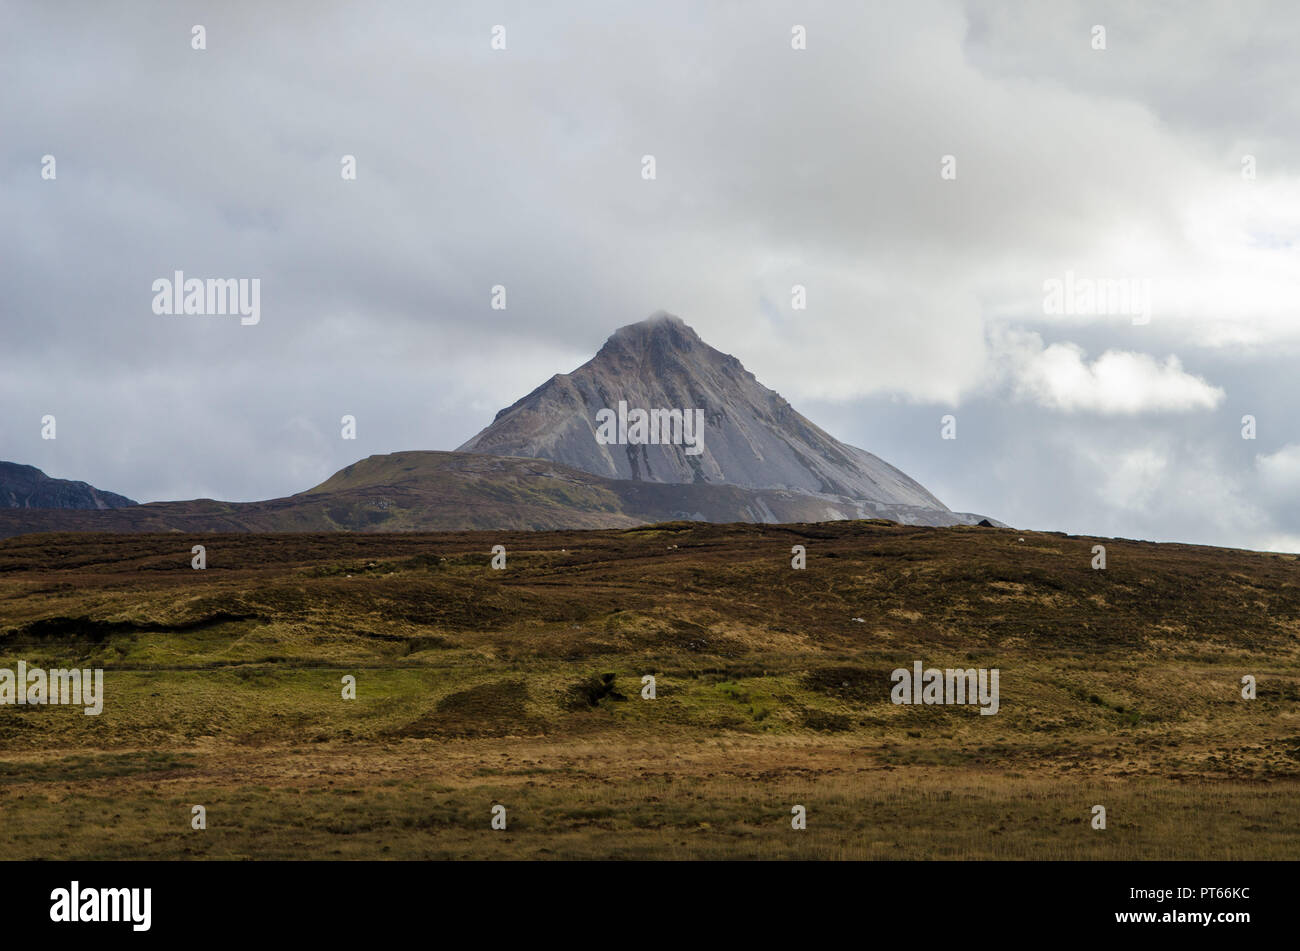 Mount Errigal Dunlewey Gweedore Donegal Ireland Europe - Stock Image